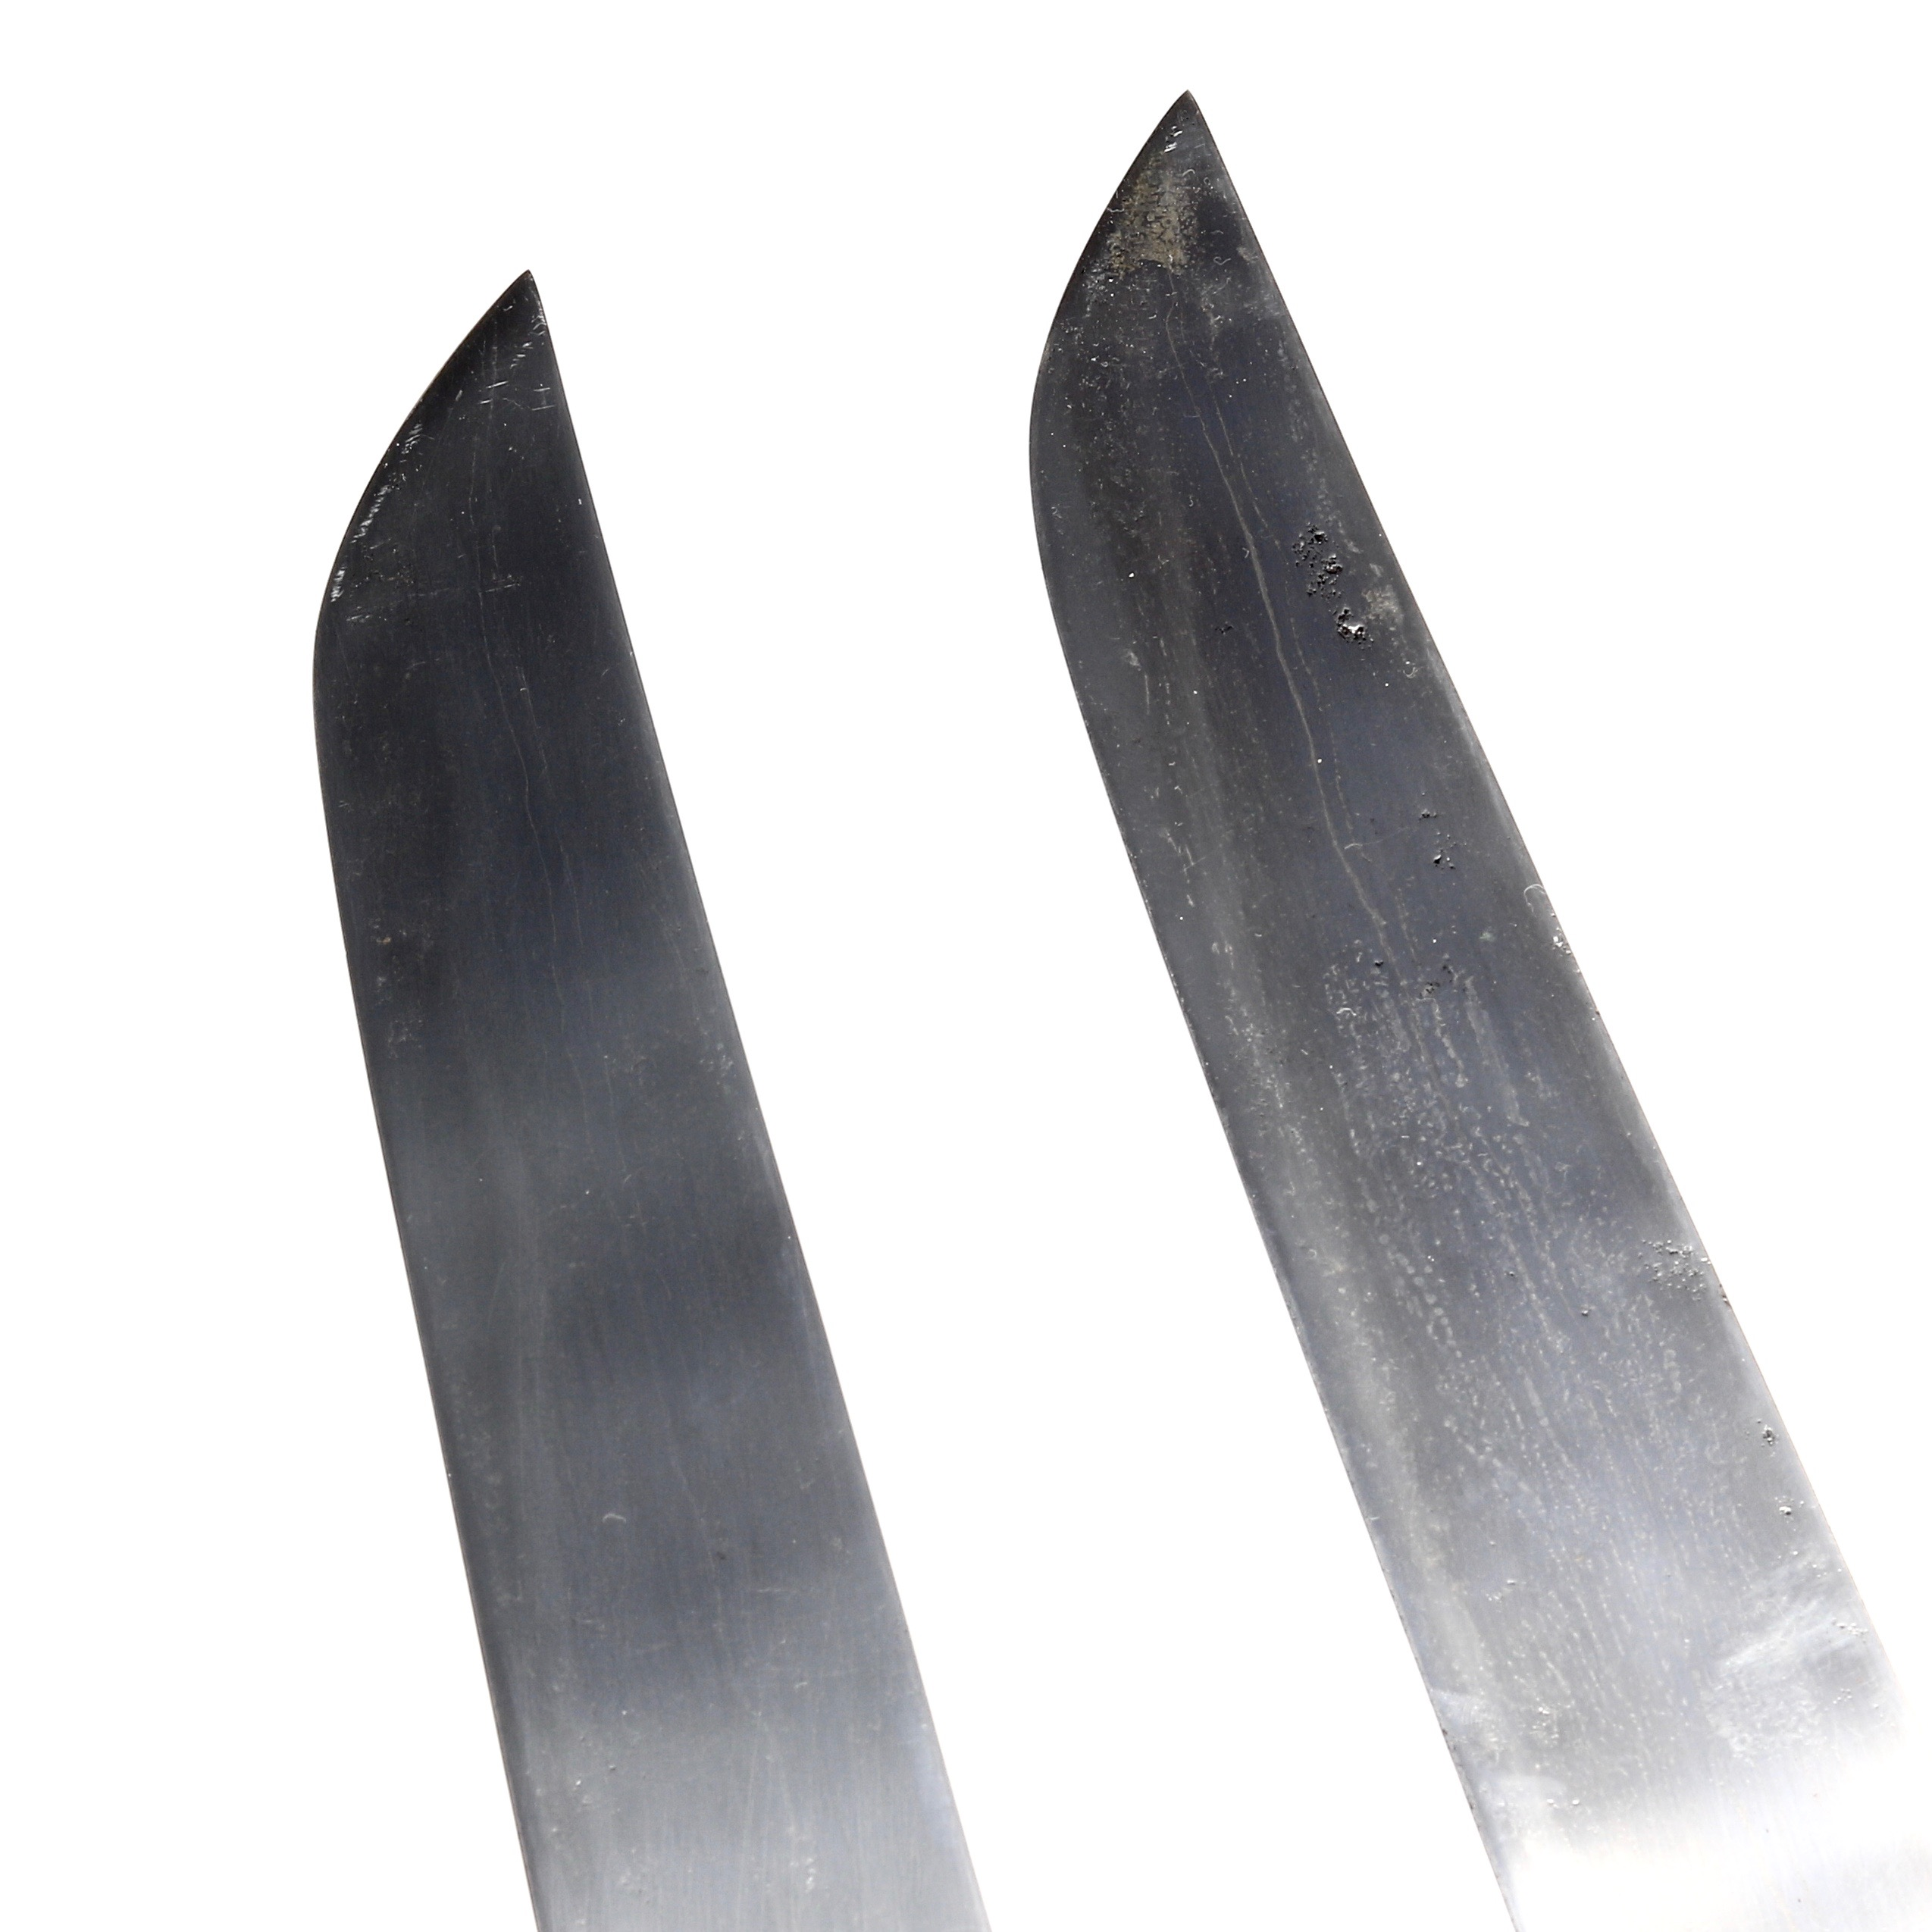 Heat treatment of hudiedao blades